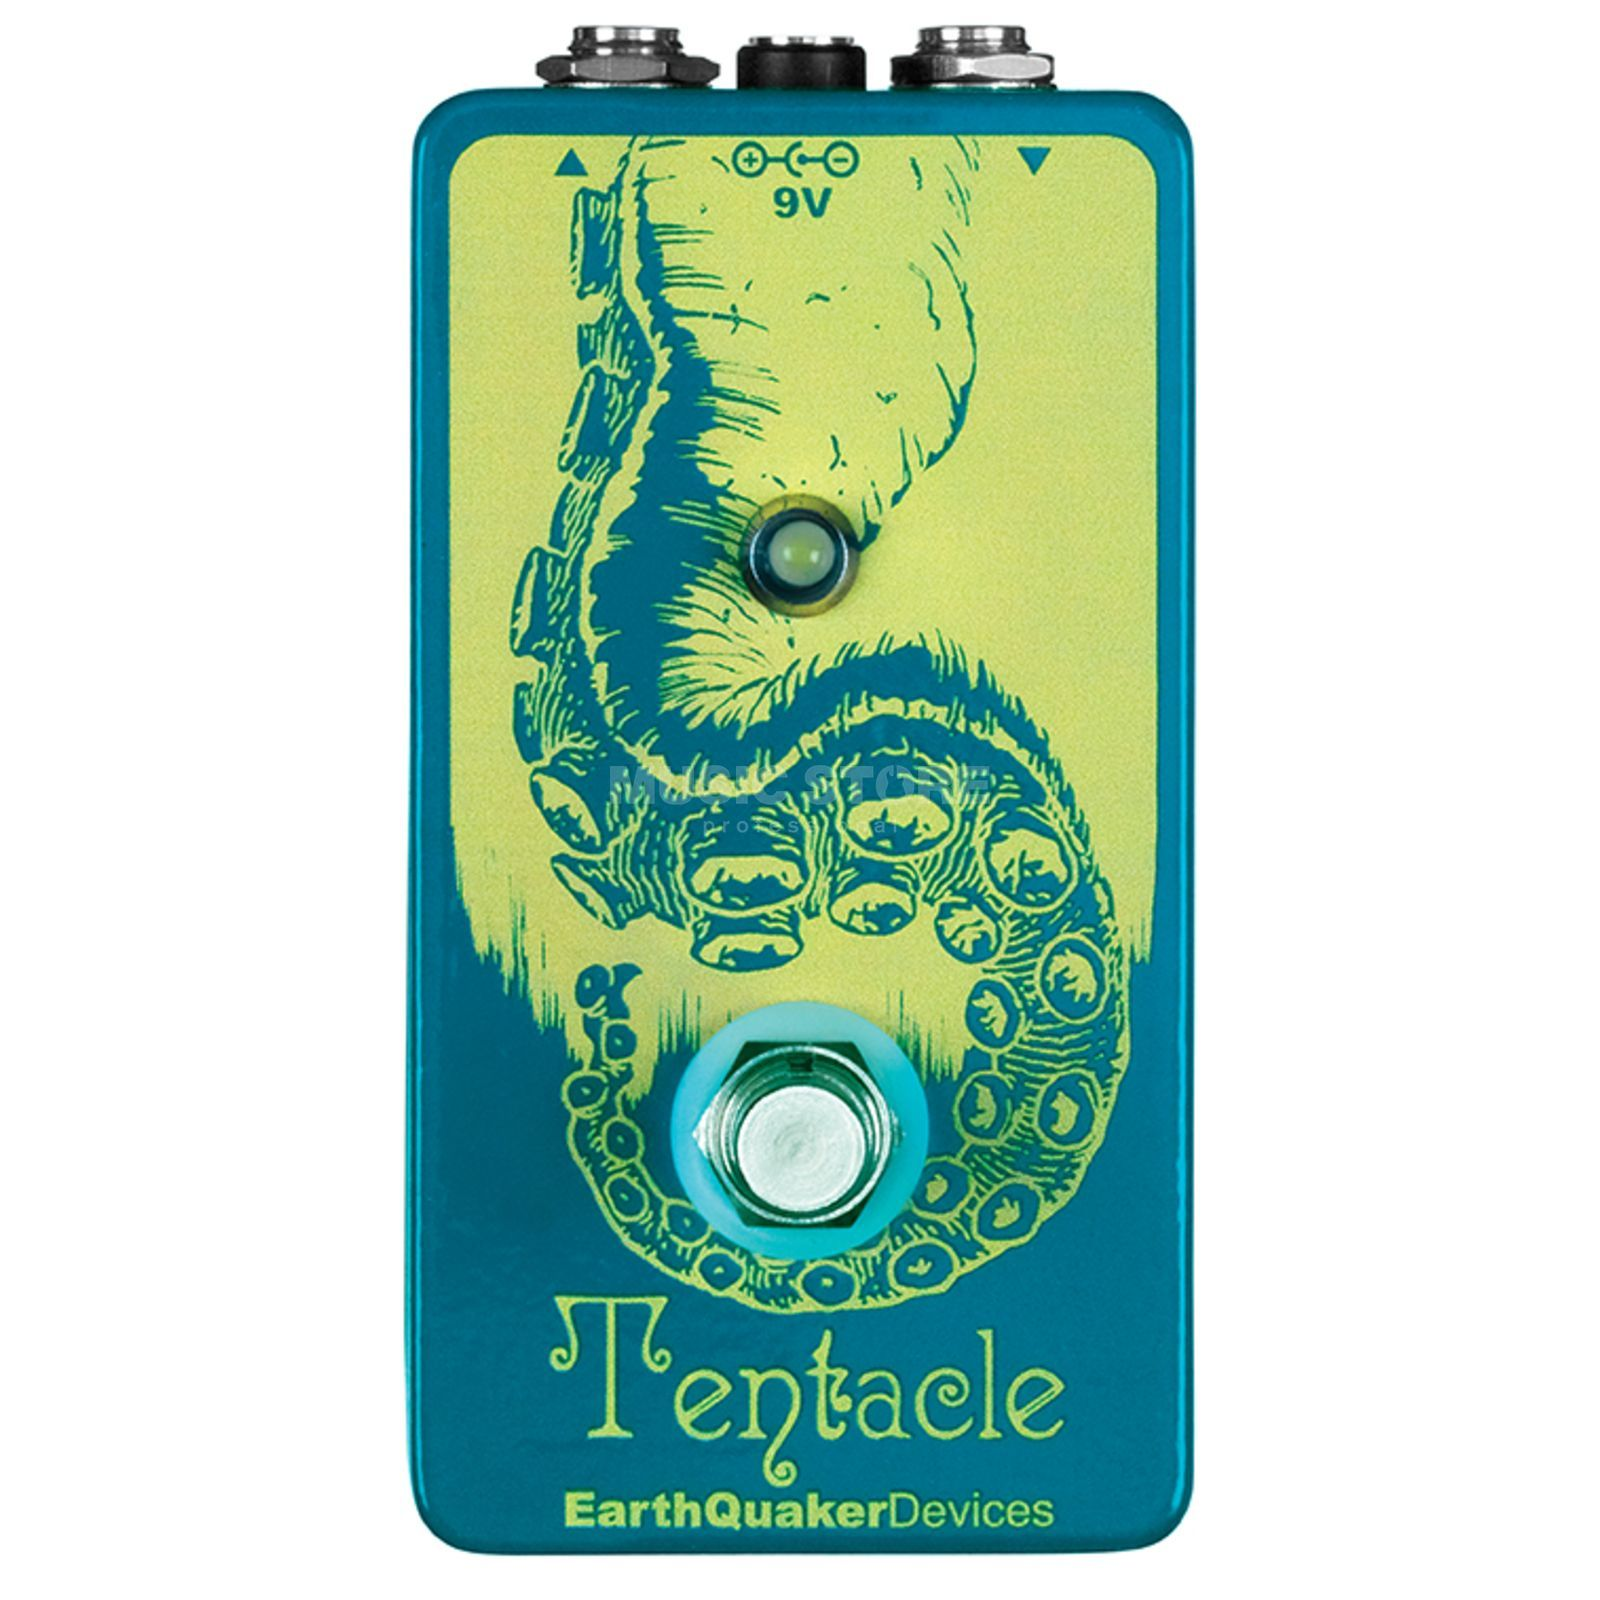 Earthquaker Devices Tentacle Analog Octave Up Product Image